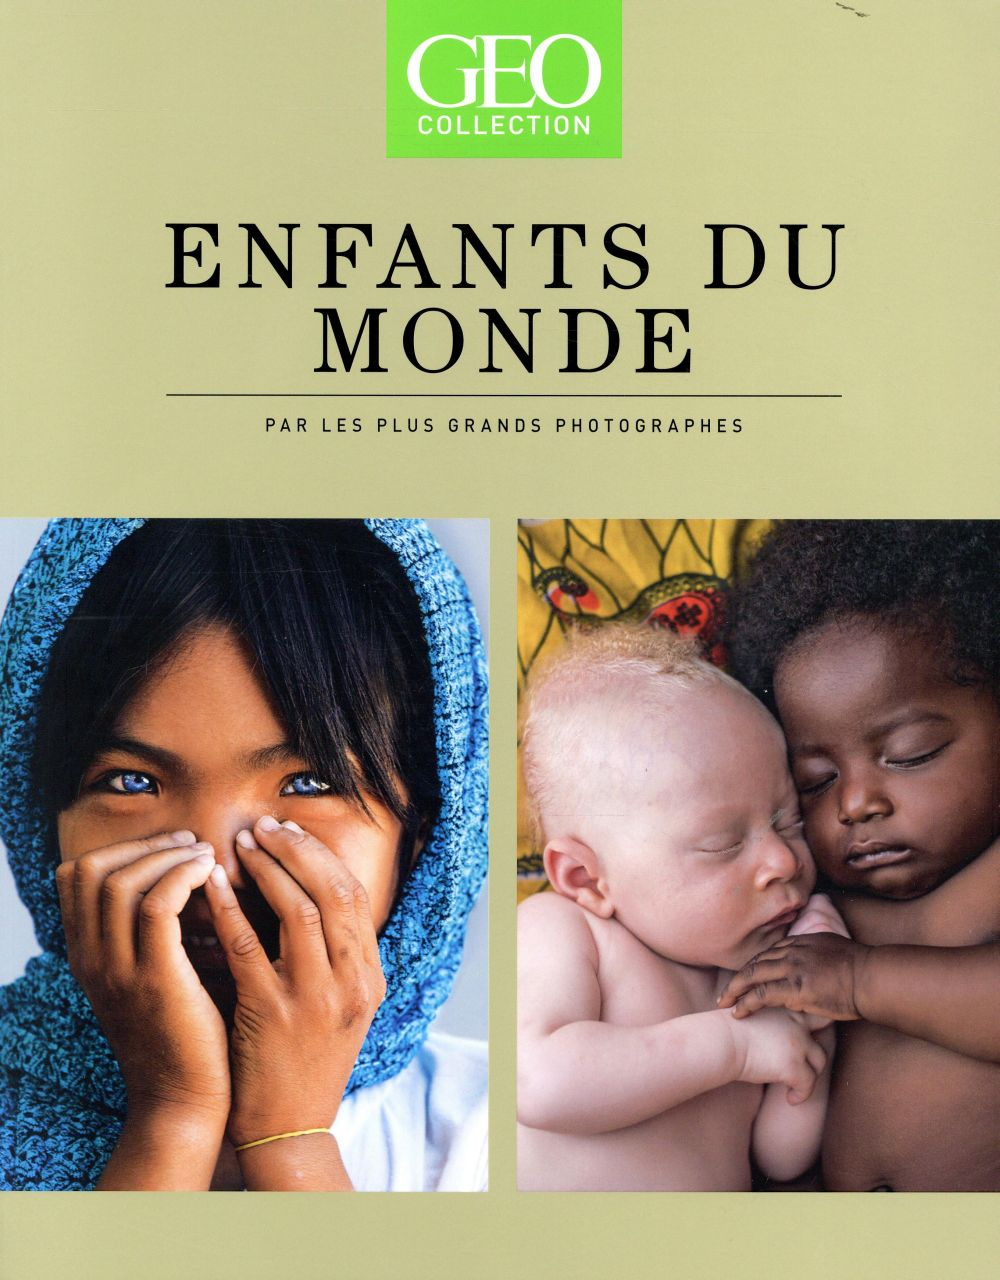 GEO COLLECTION   ENFANTS DU MONDE